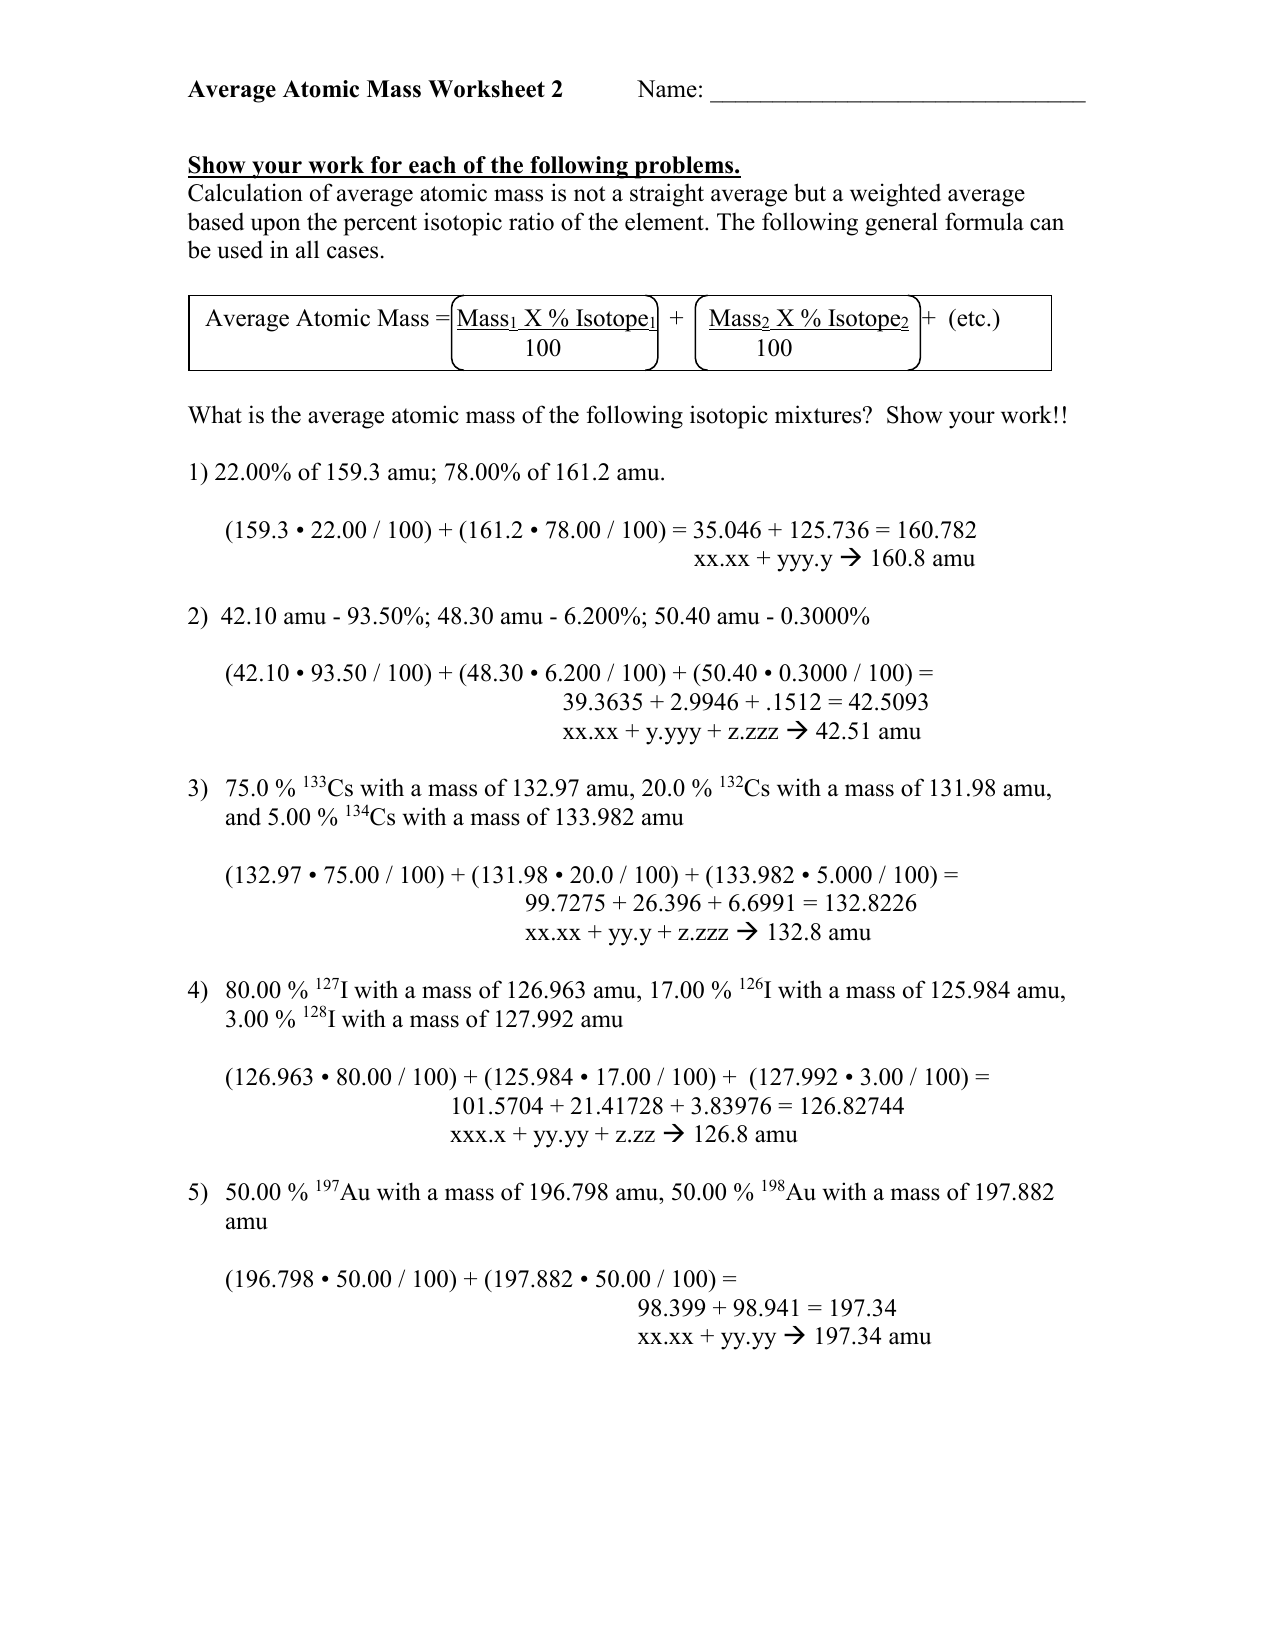 02 06 Average Atomic Mass Worksheet 2